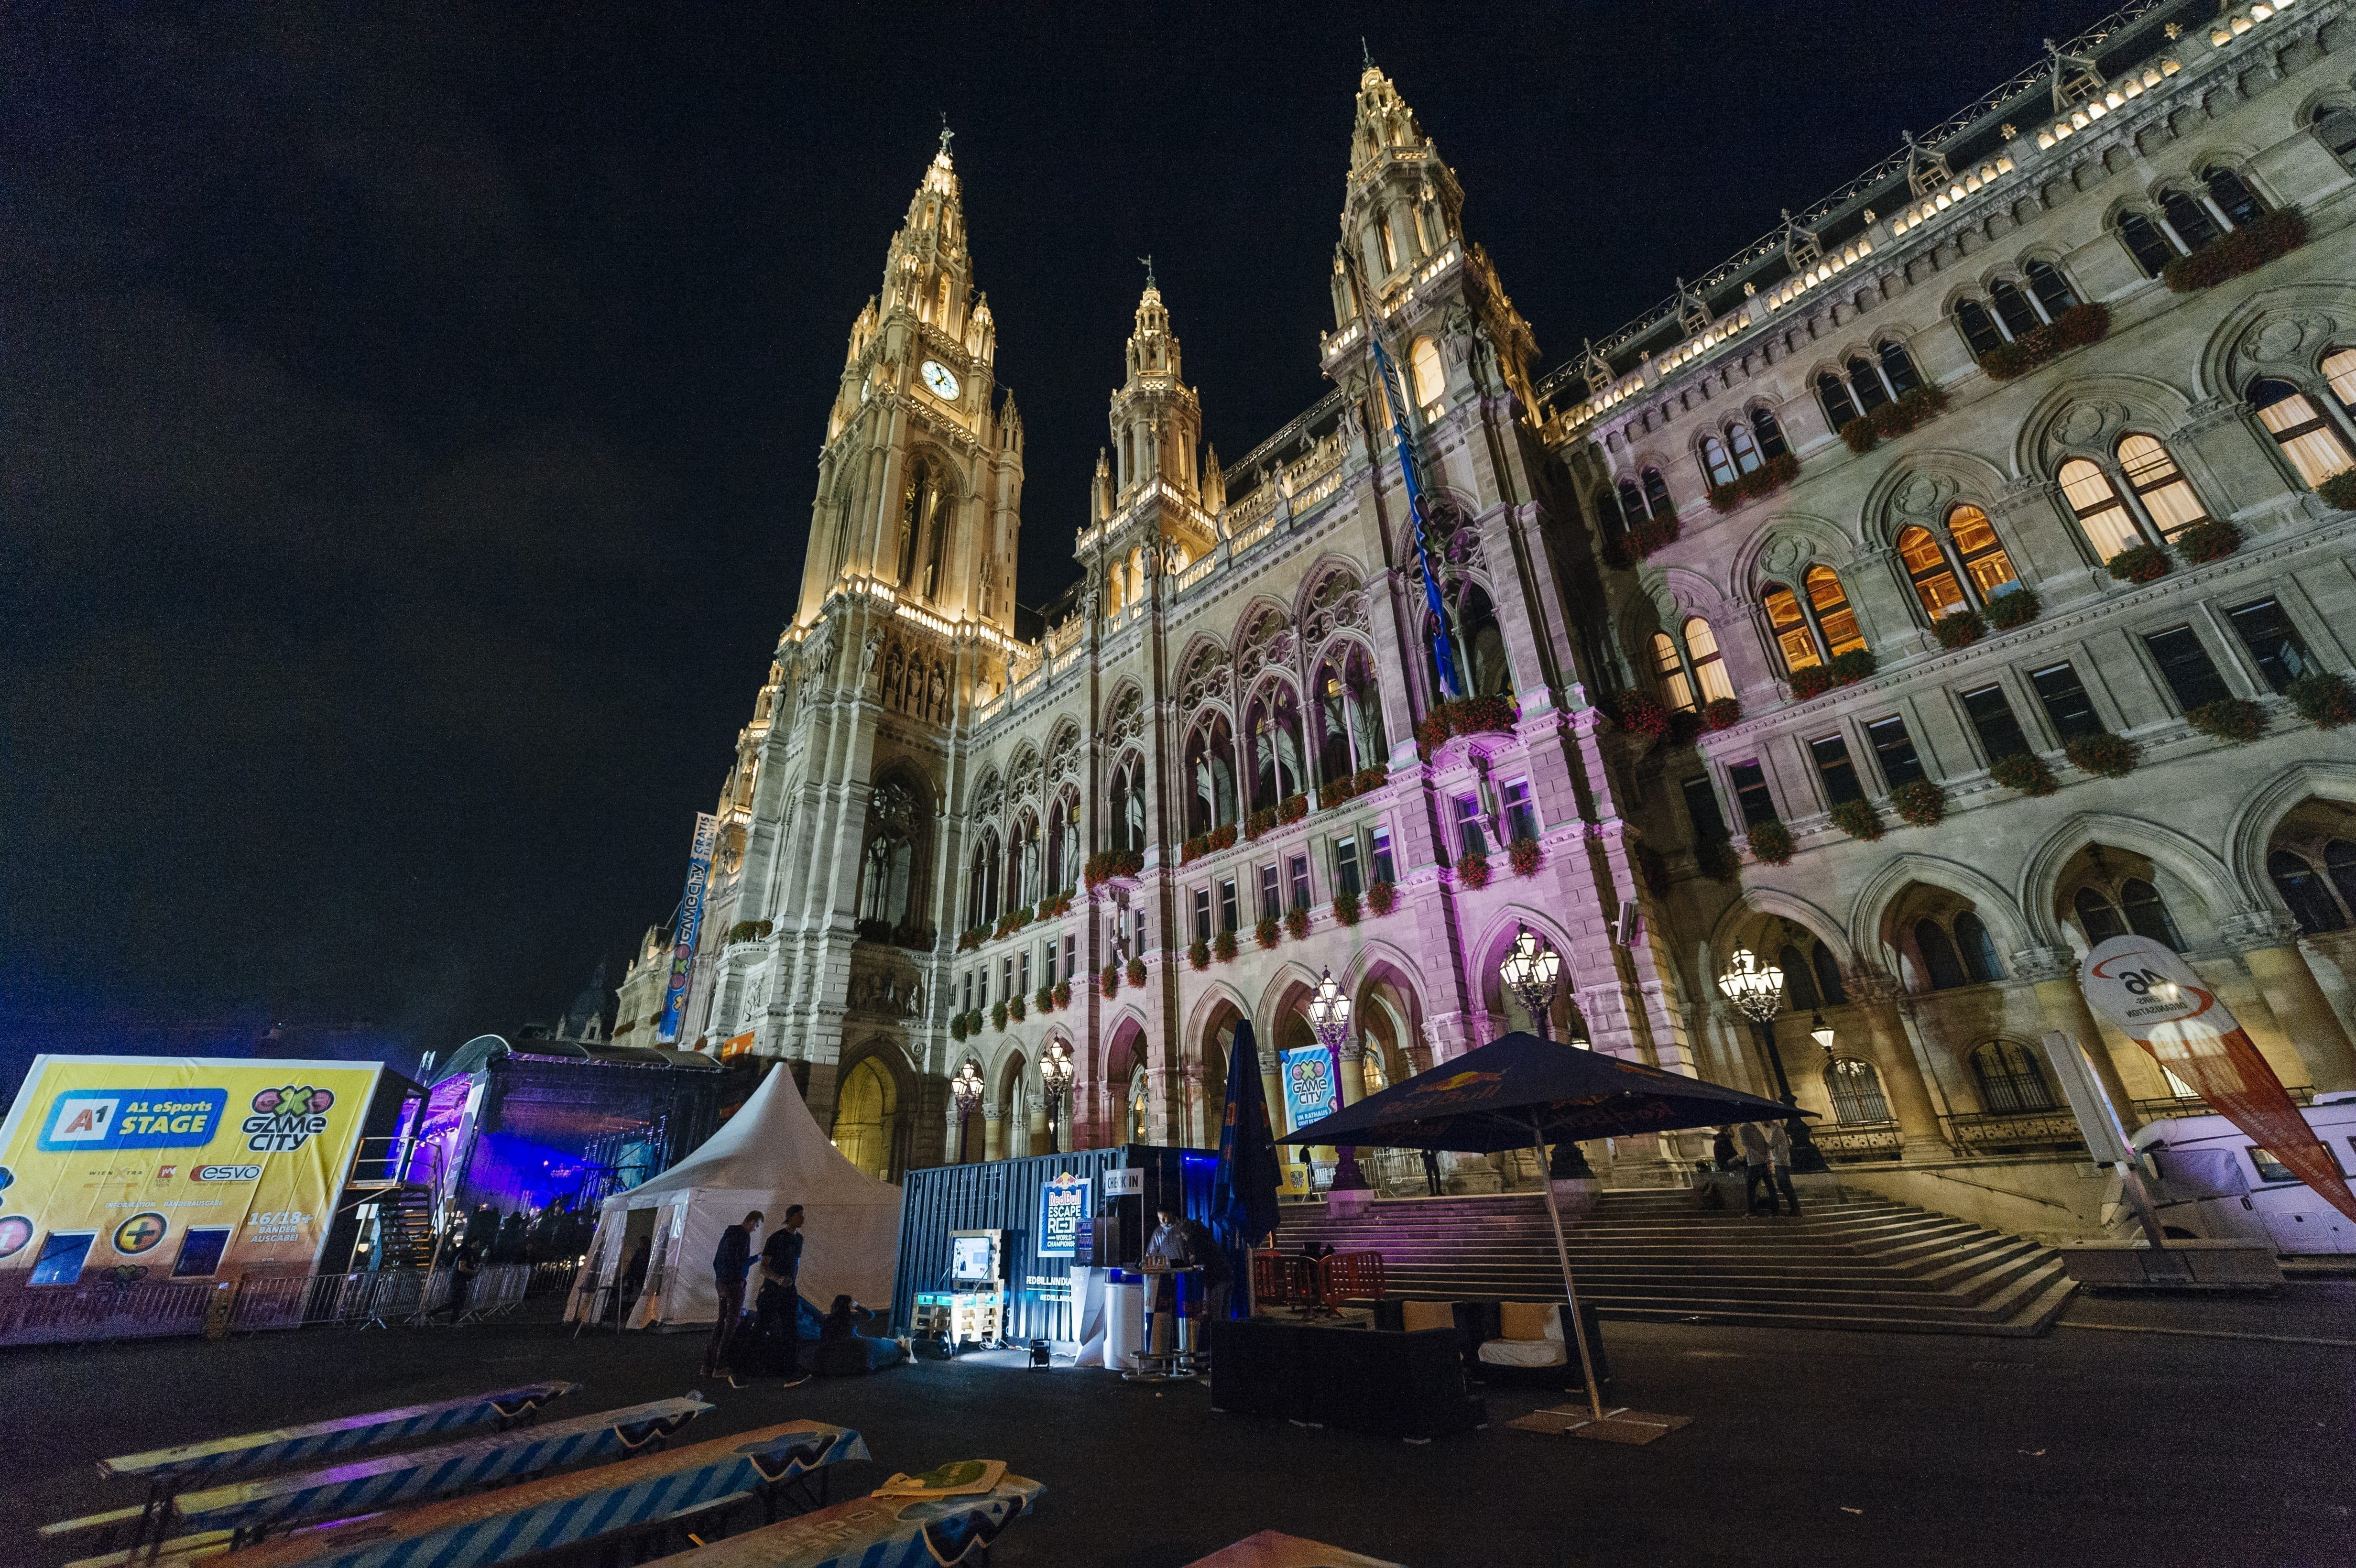 Venue of the Red Bull Escape Room World Championship Qualifier 2018 Vienna, Austria on October 19th, 2018